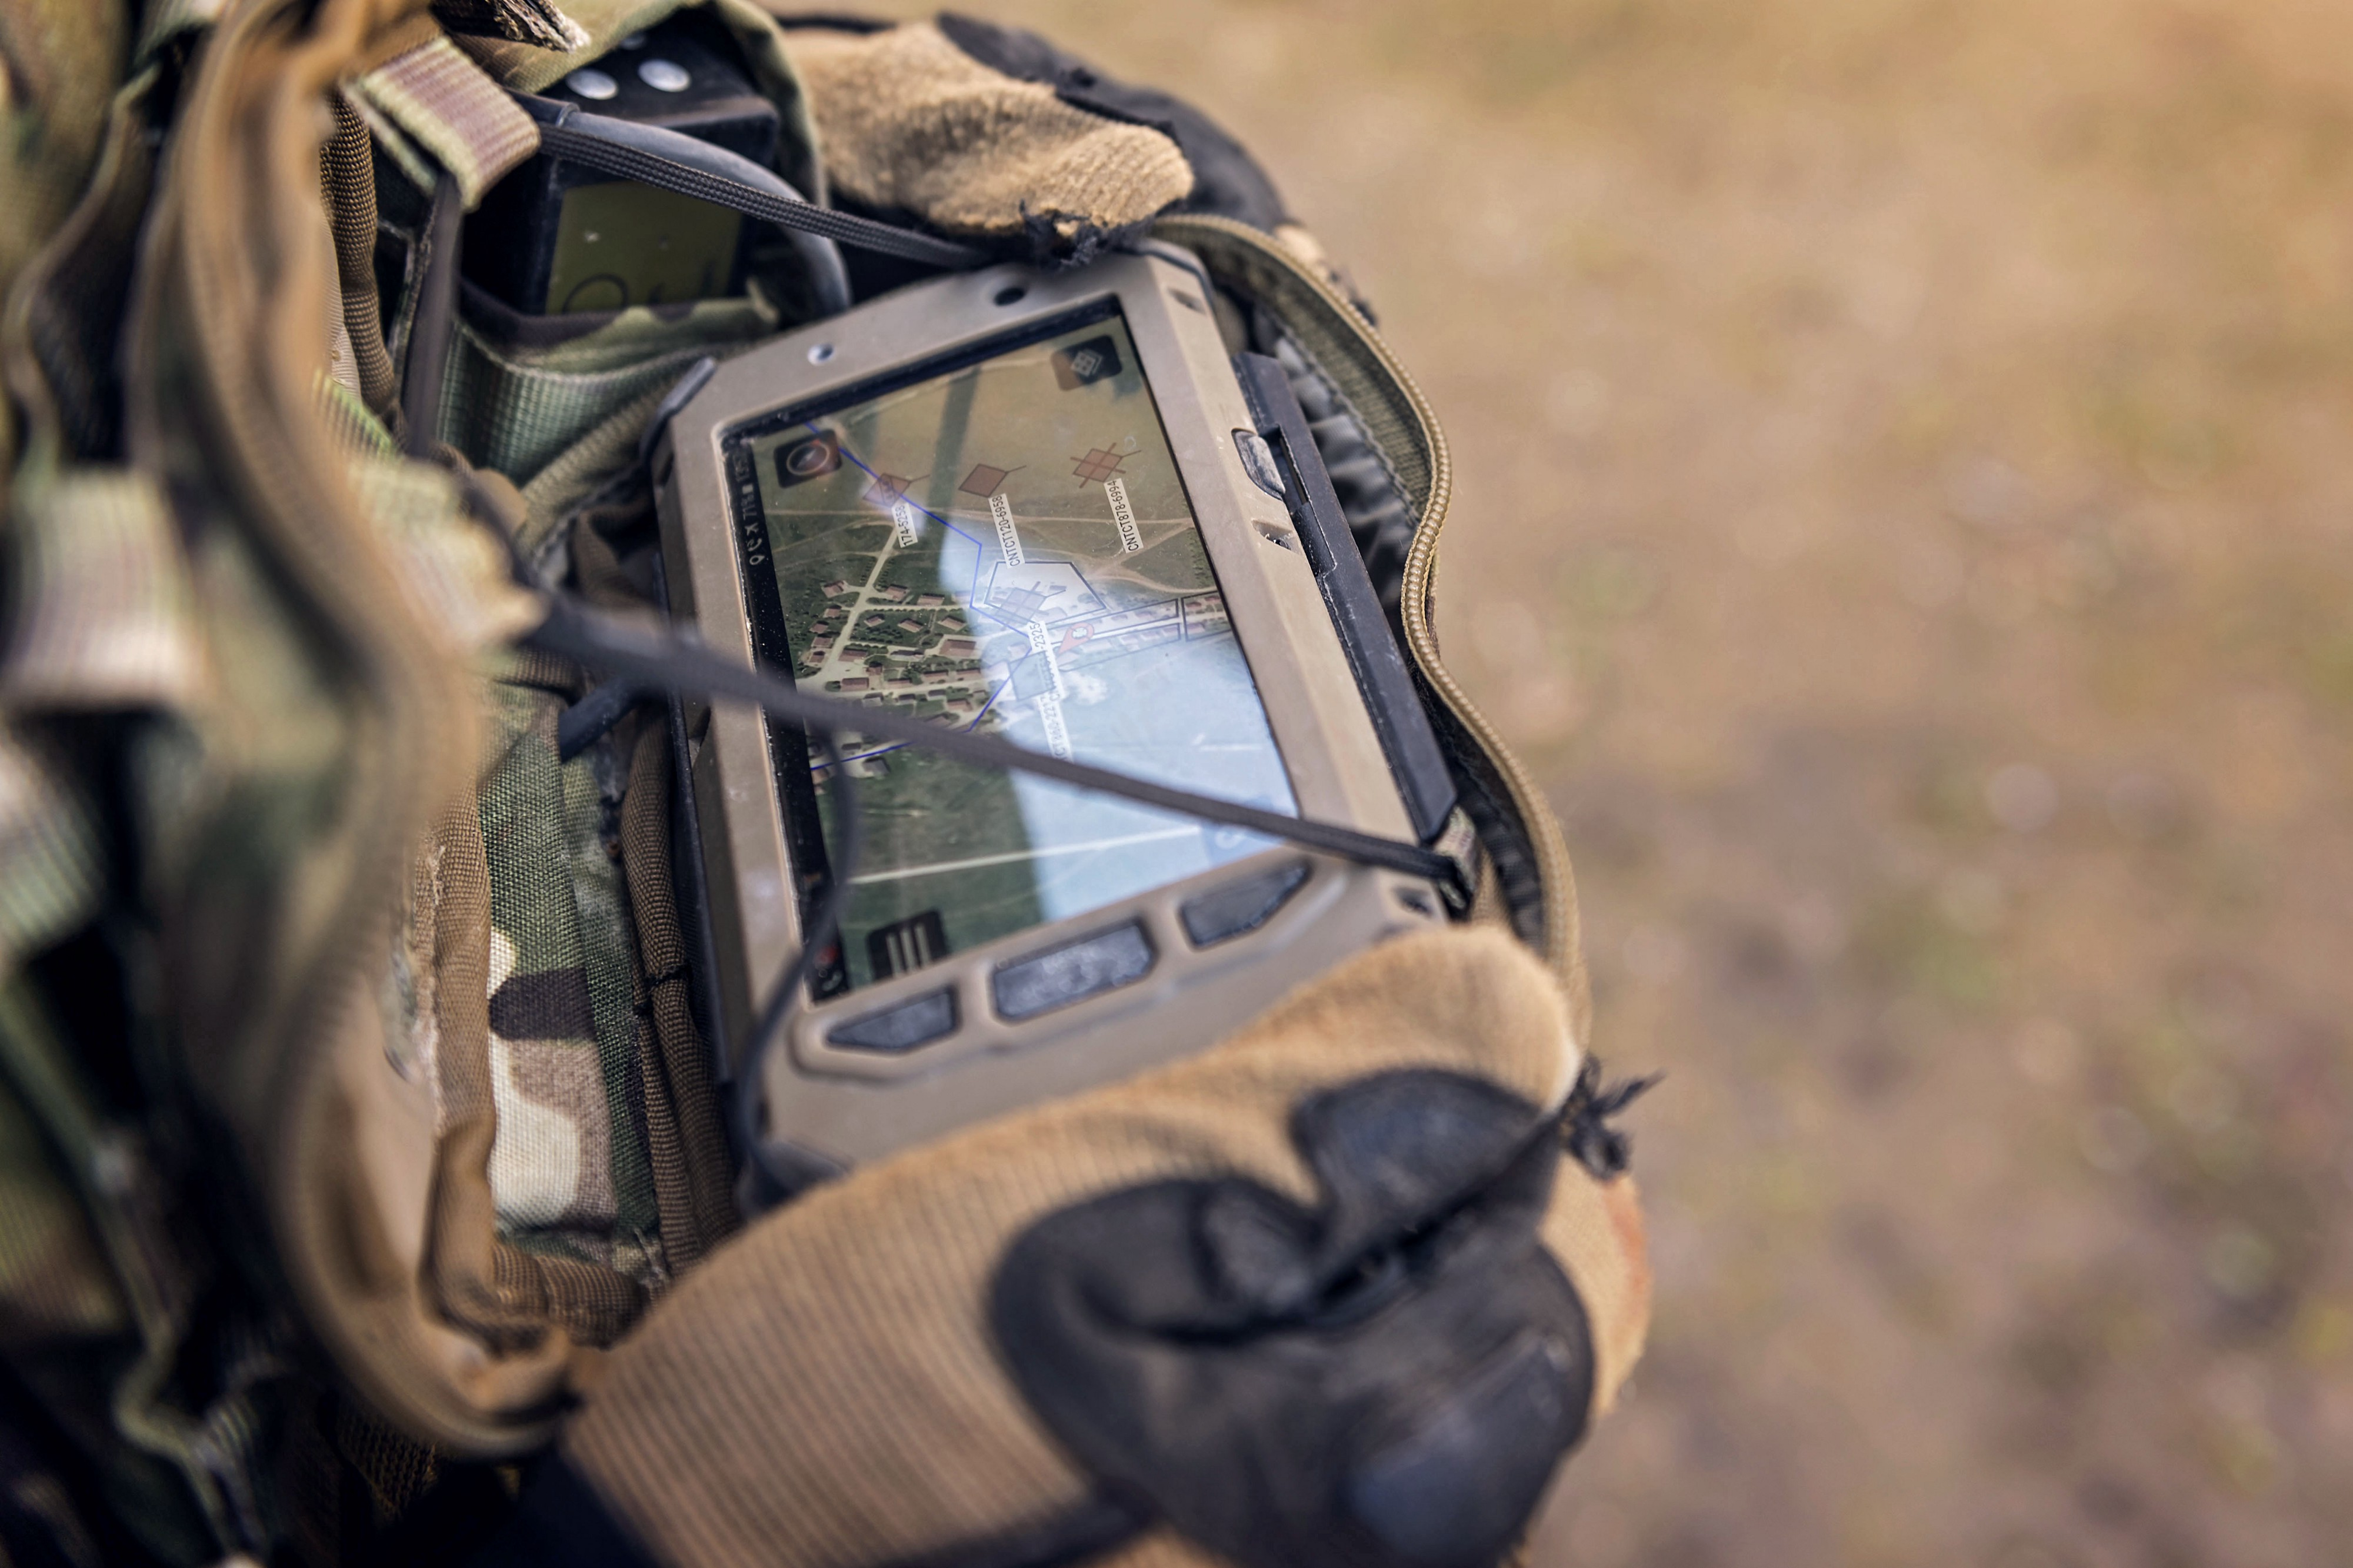 Soldier holding a piece of technology that shows the battle field on a small portable screen